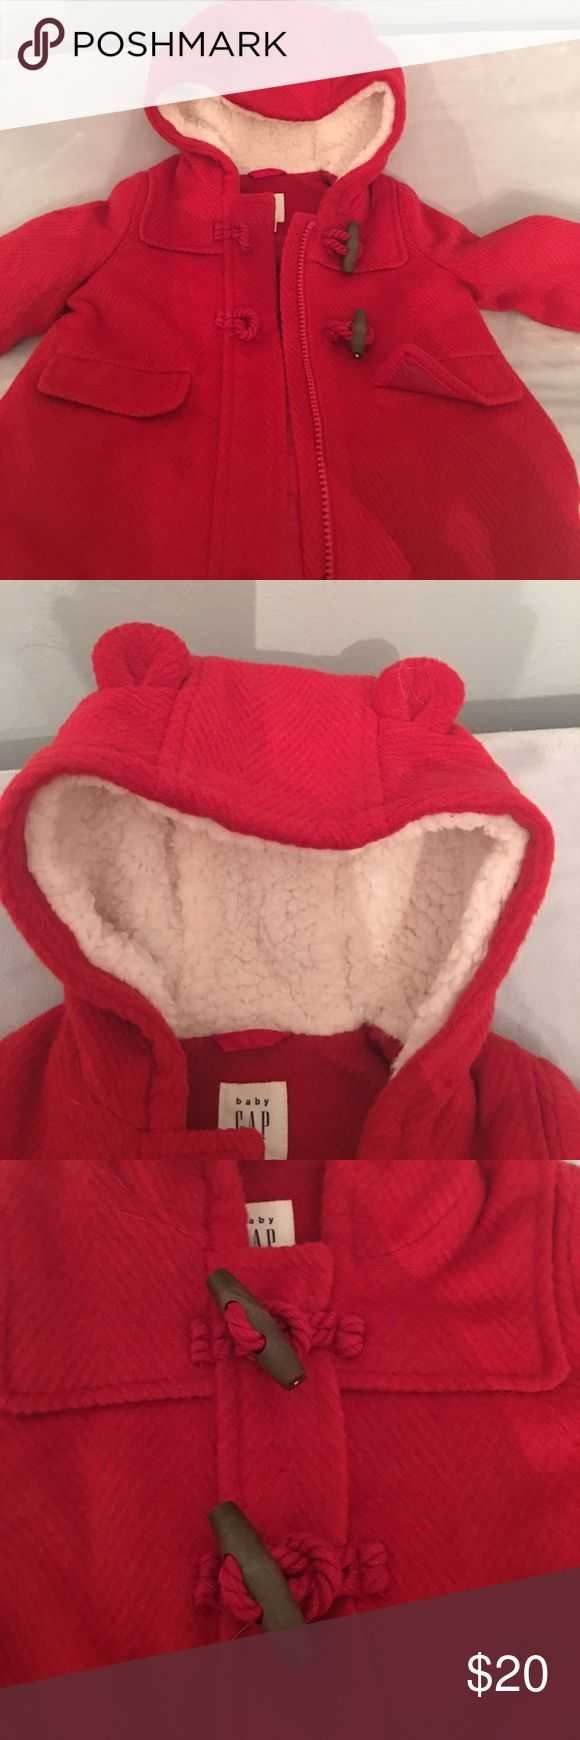 baby GAP coat 6-12 months New (used once) baby GAP coat 6-12 months.  The hoodie part has adorable ears. GAP Jackets & Coats Pea Coats